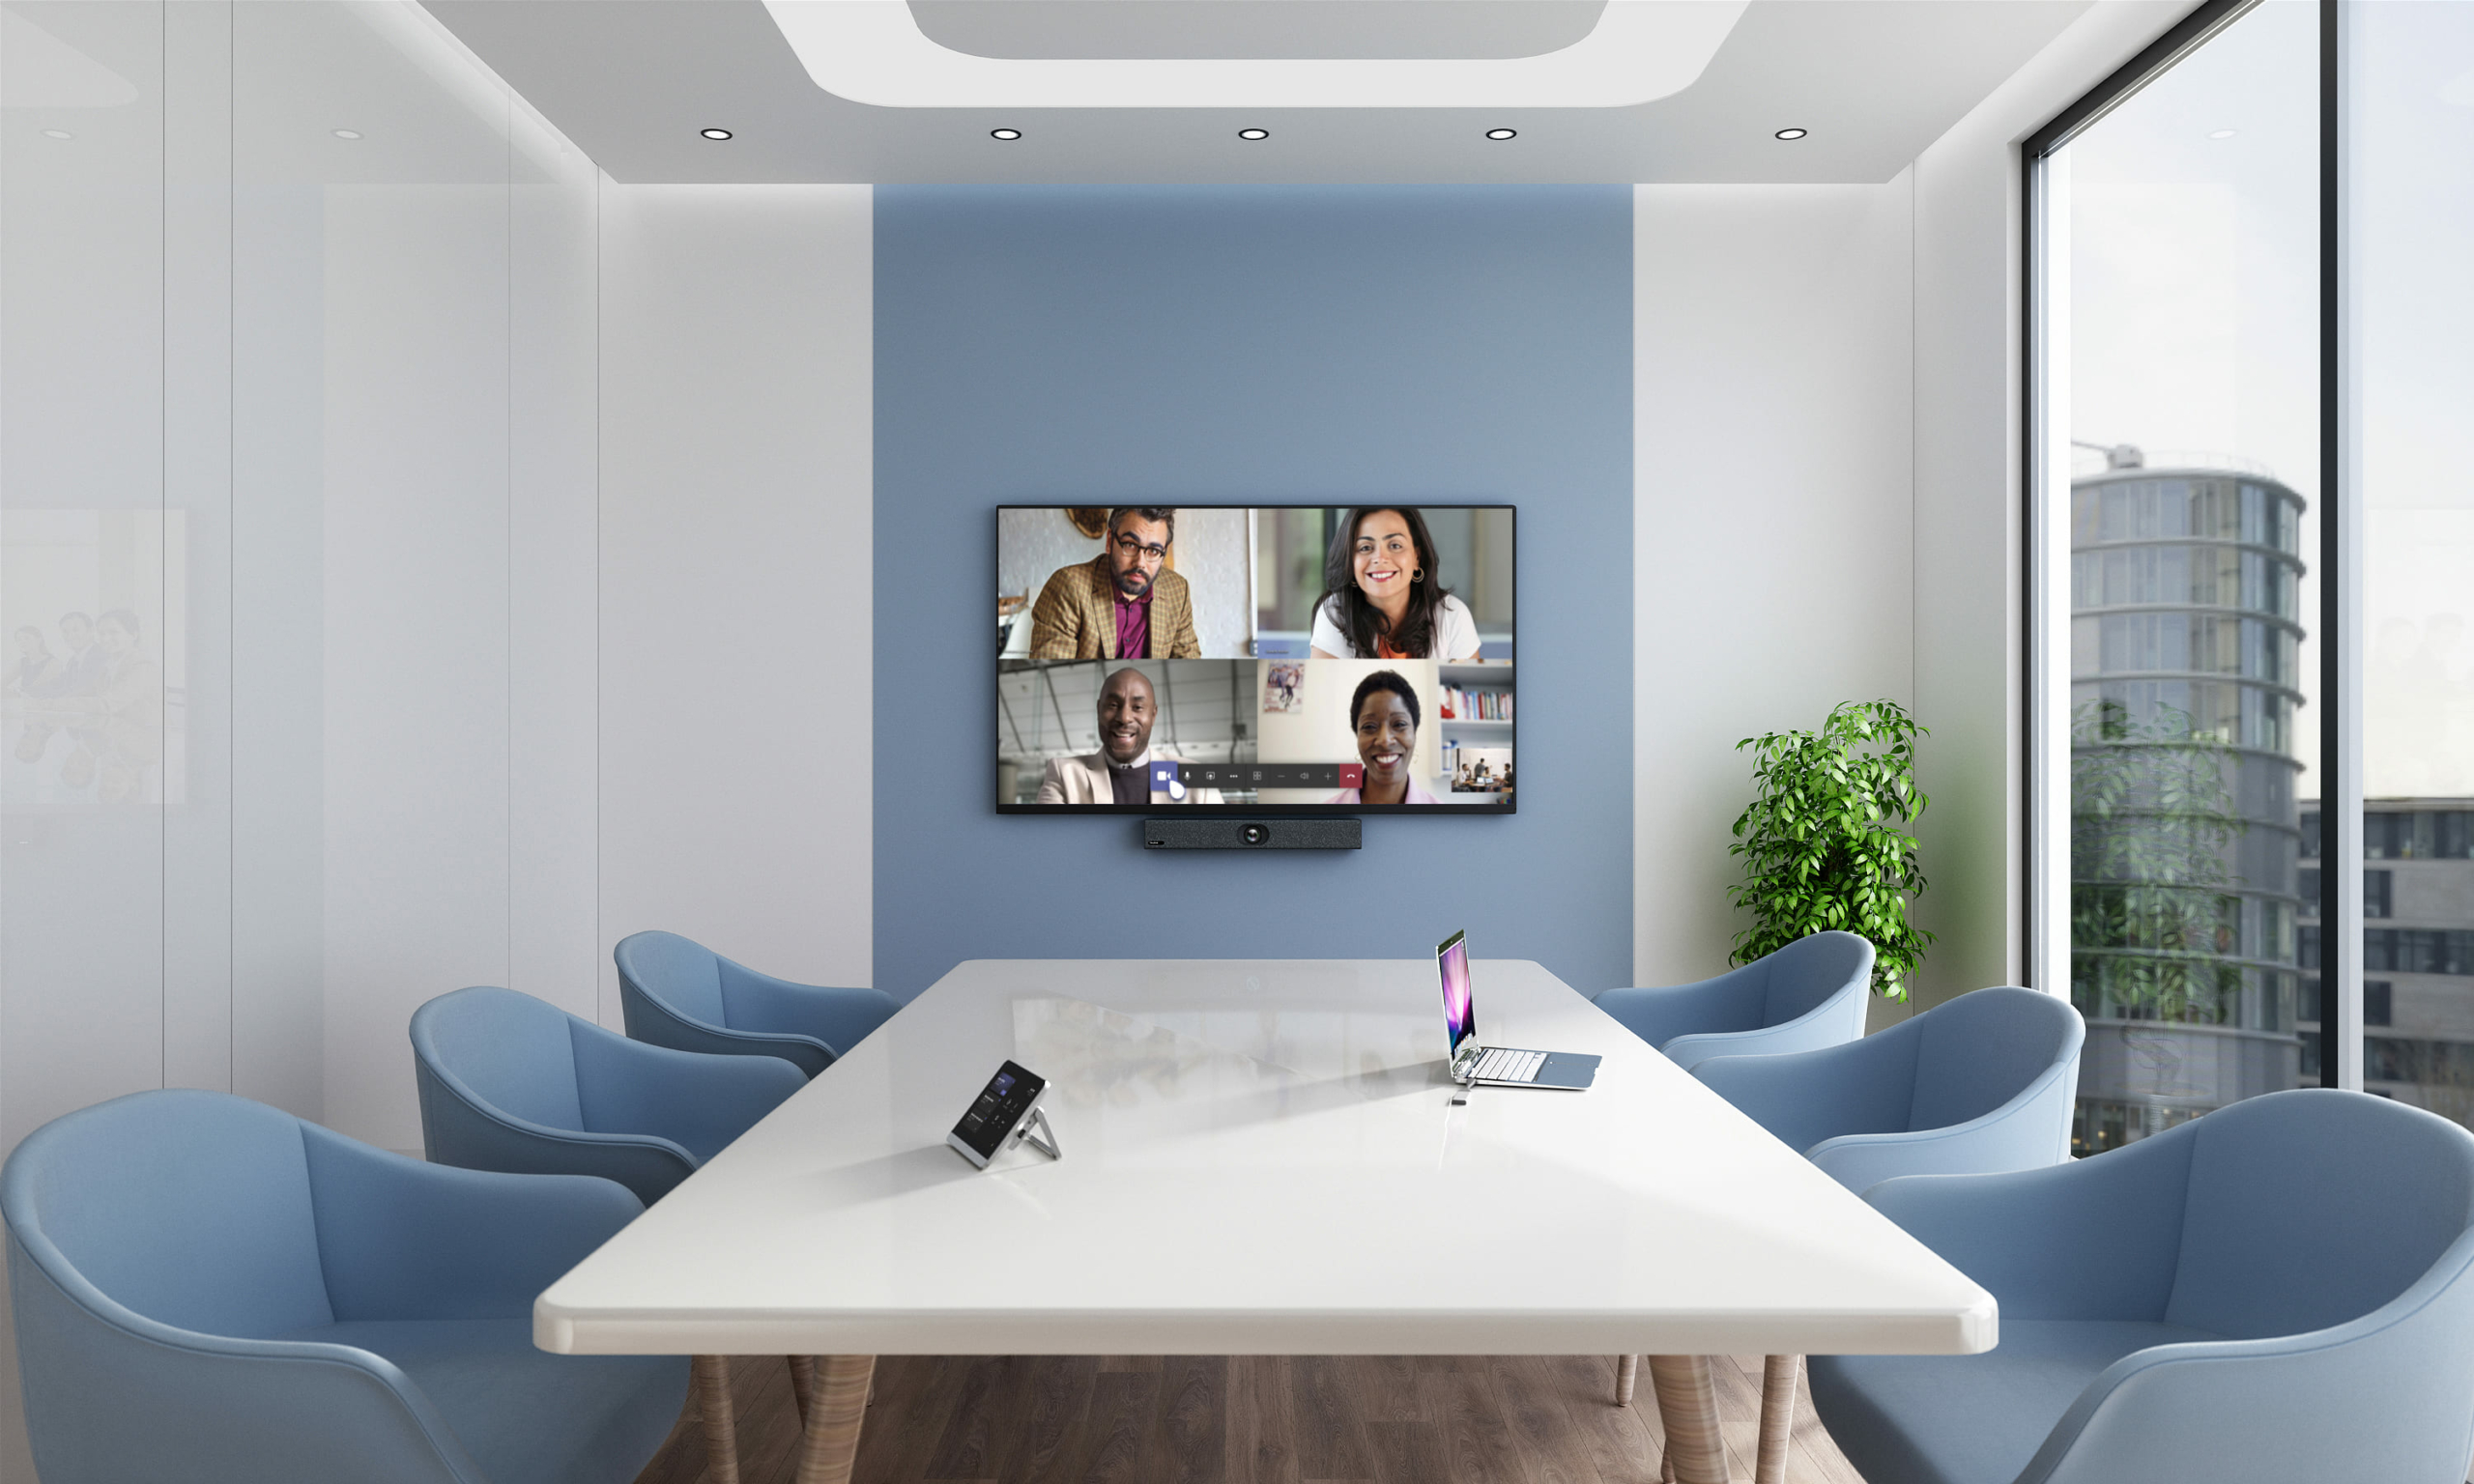 All-in-one Video Bars